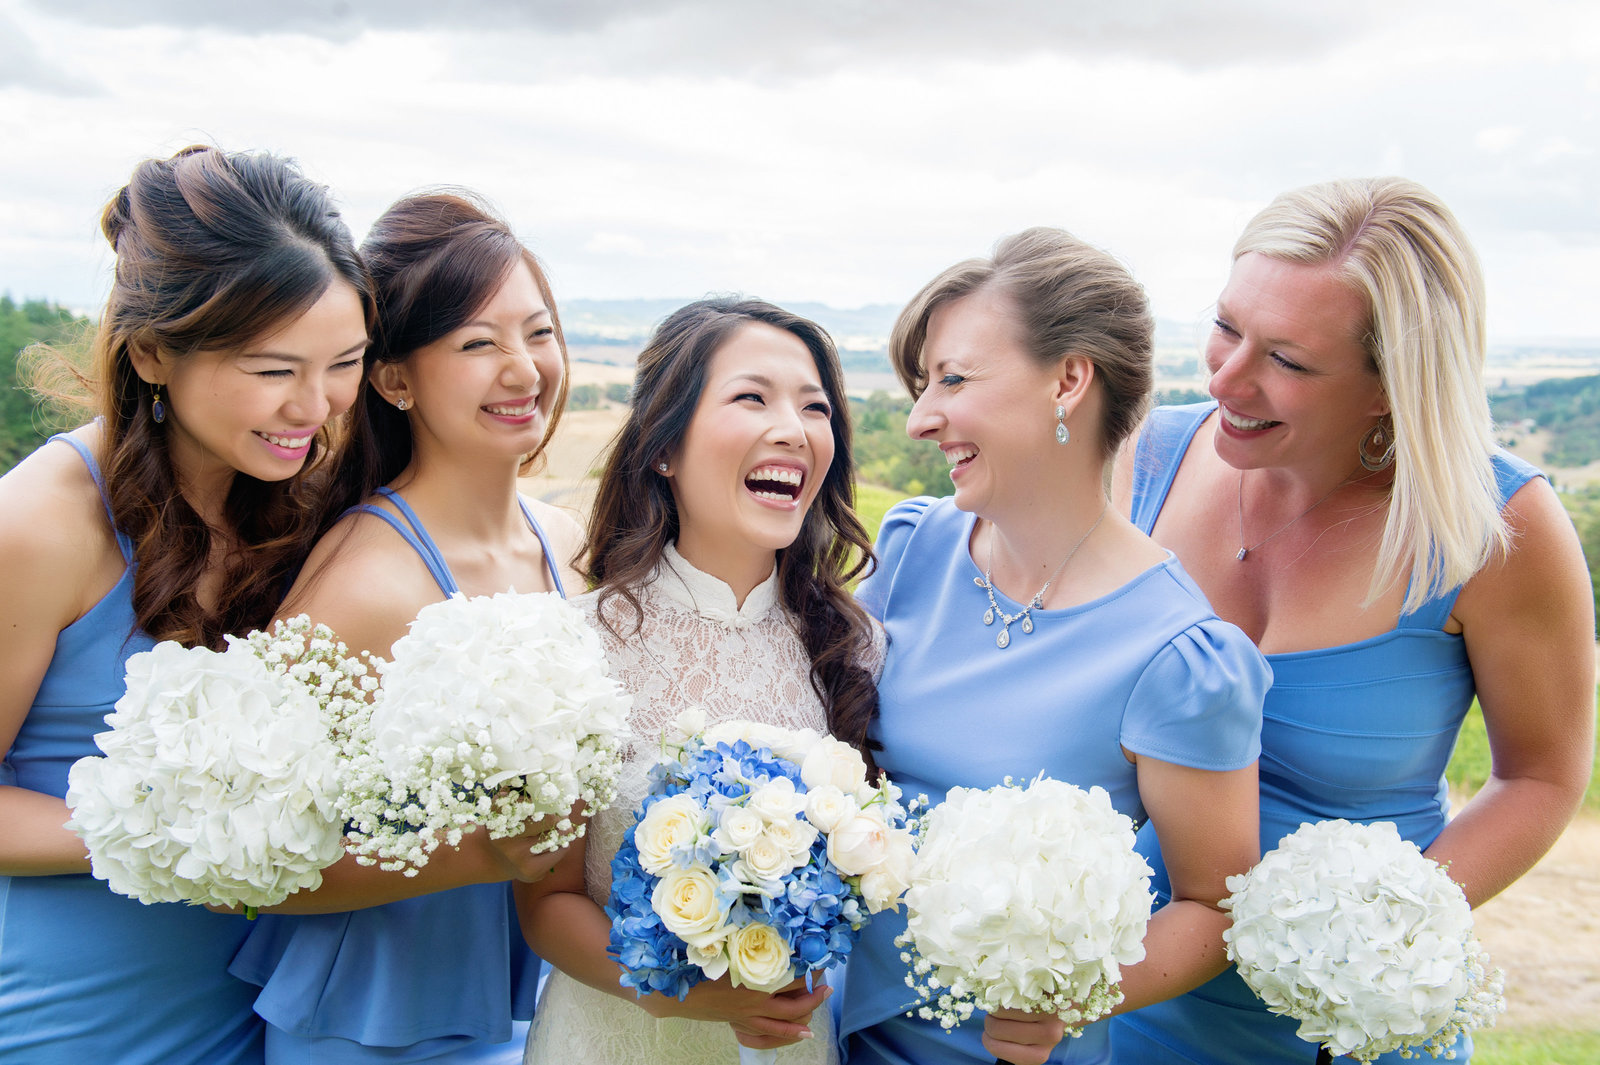 Crystal Genes Photography YOUNGBERG HILL WEDDING_150903-143150